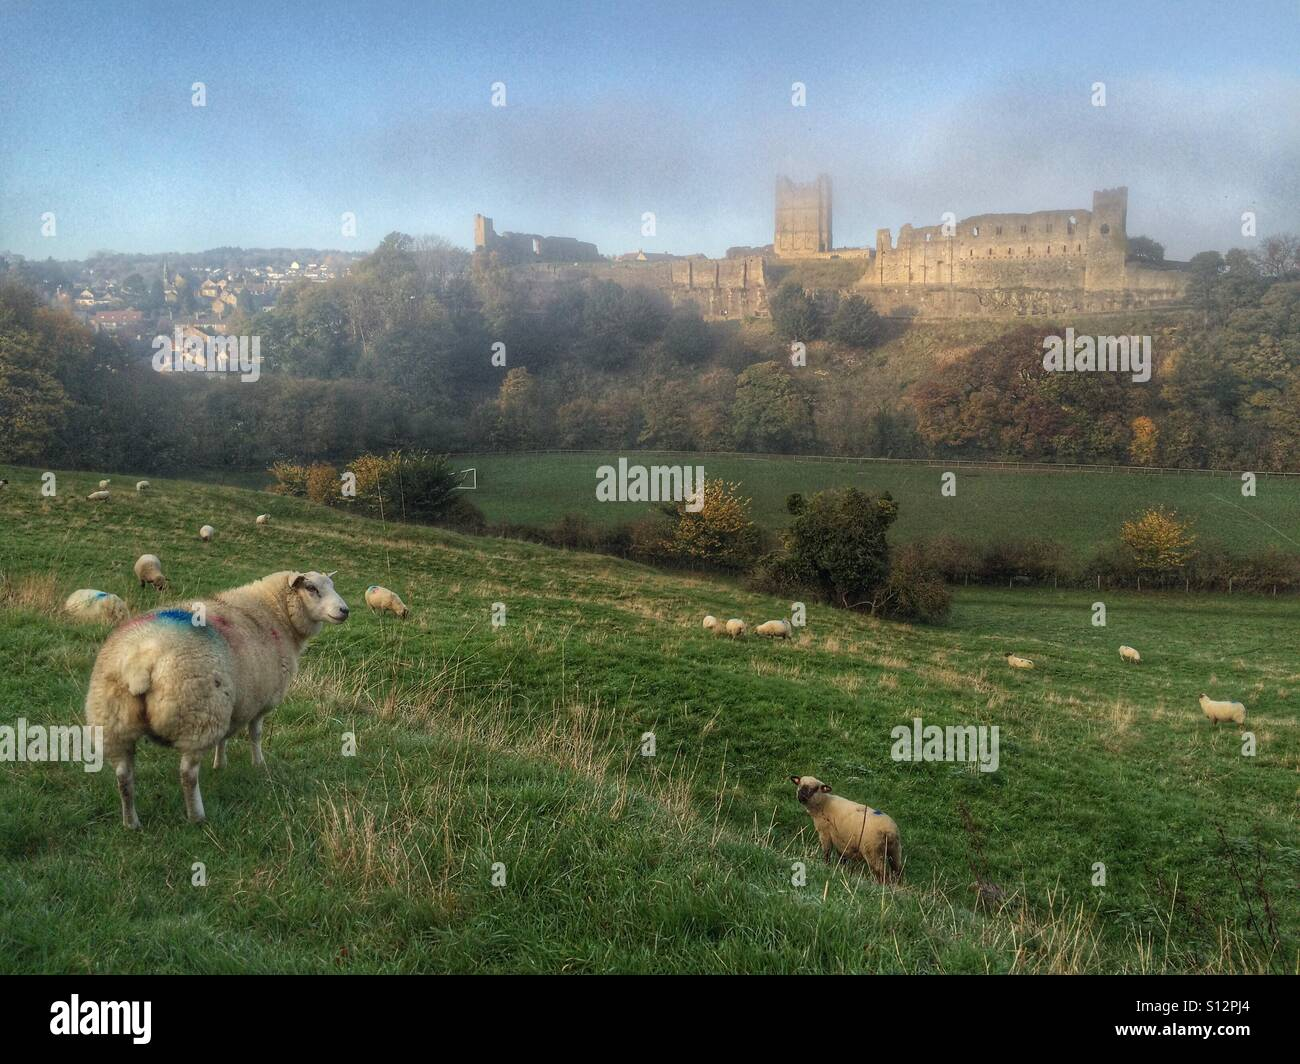 A foggy Richmond Castle in North Yorkshire, England. Stock Photo